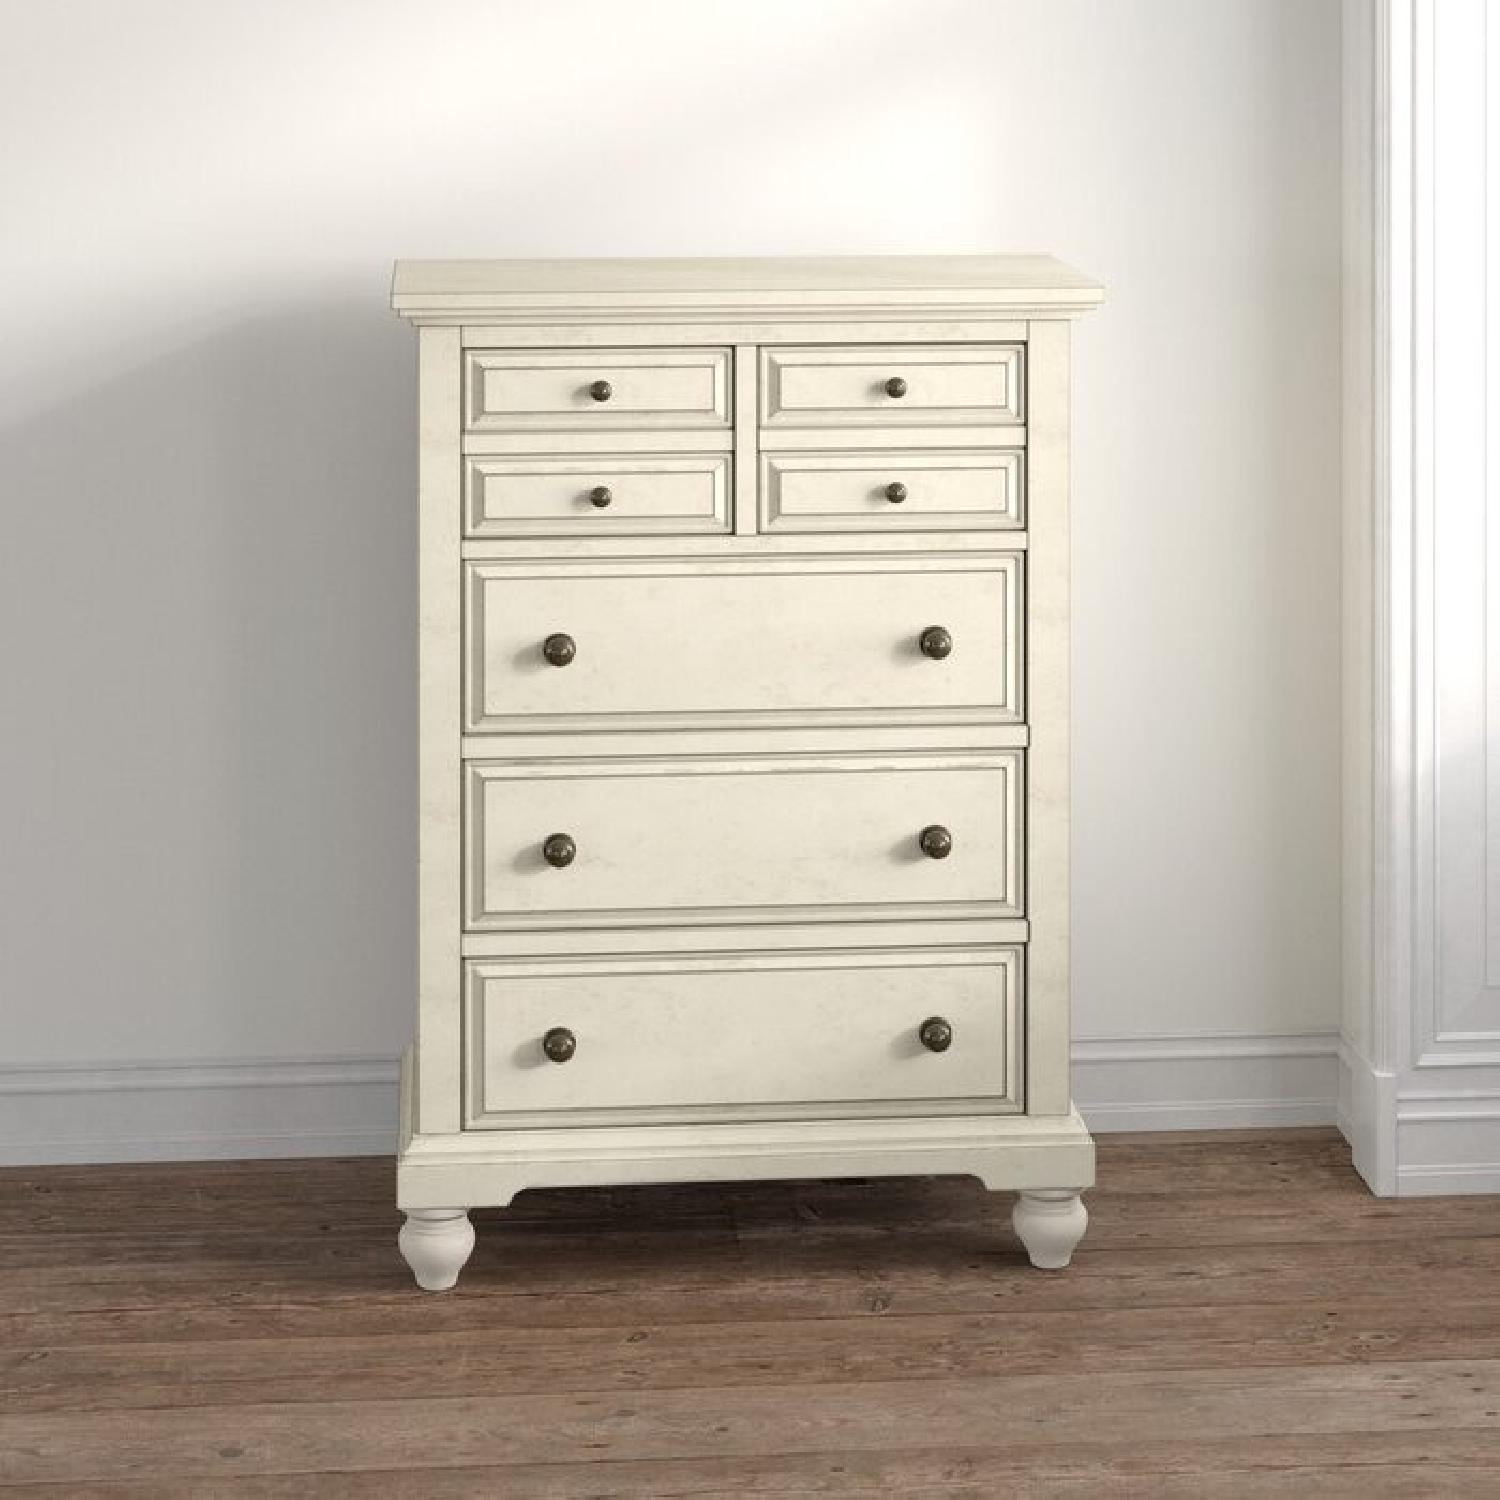 Wayfair Philomena 5 Drawer Chest - image-5